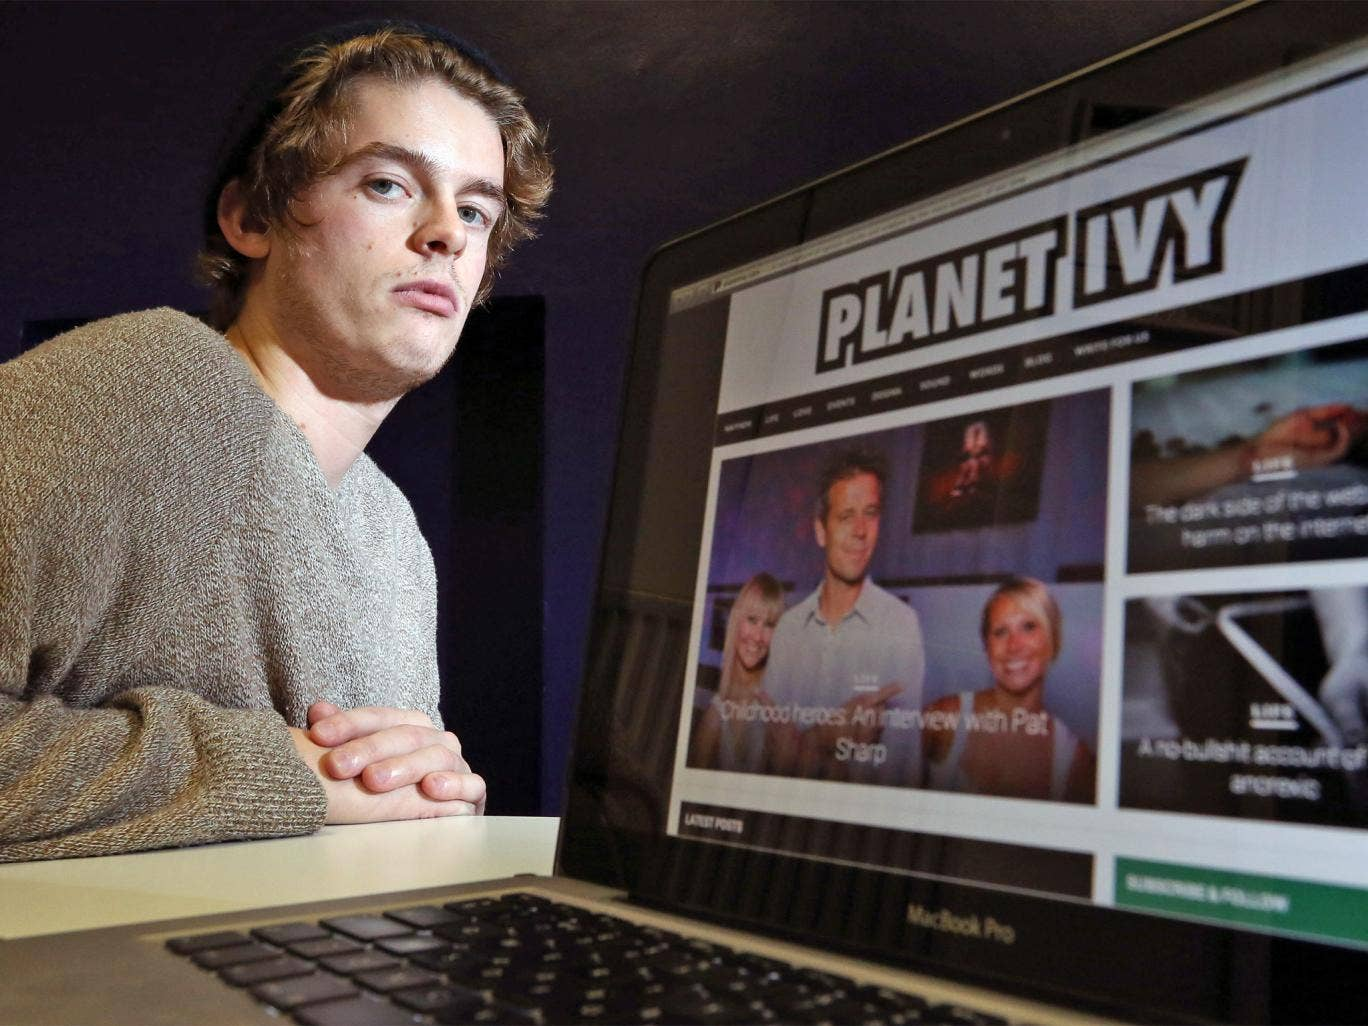 Robert Hall, an english student at Goldsmiths University, is on a zero-pay contract at Planet Ivy